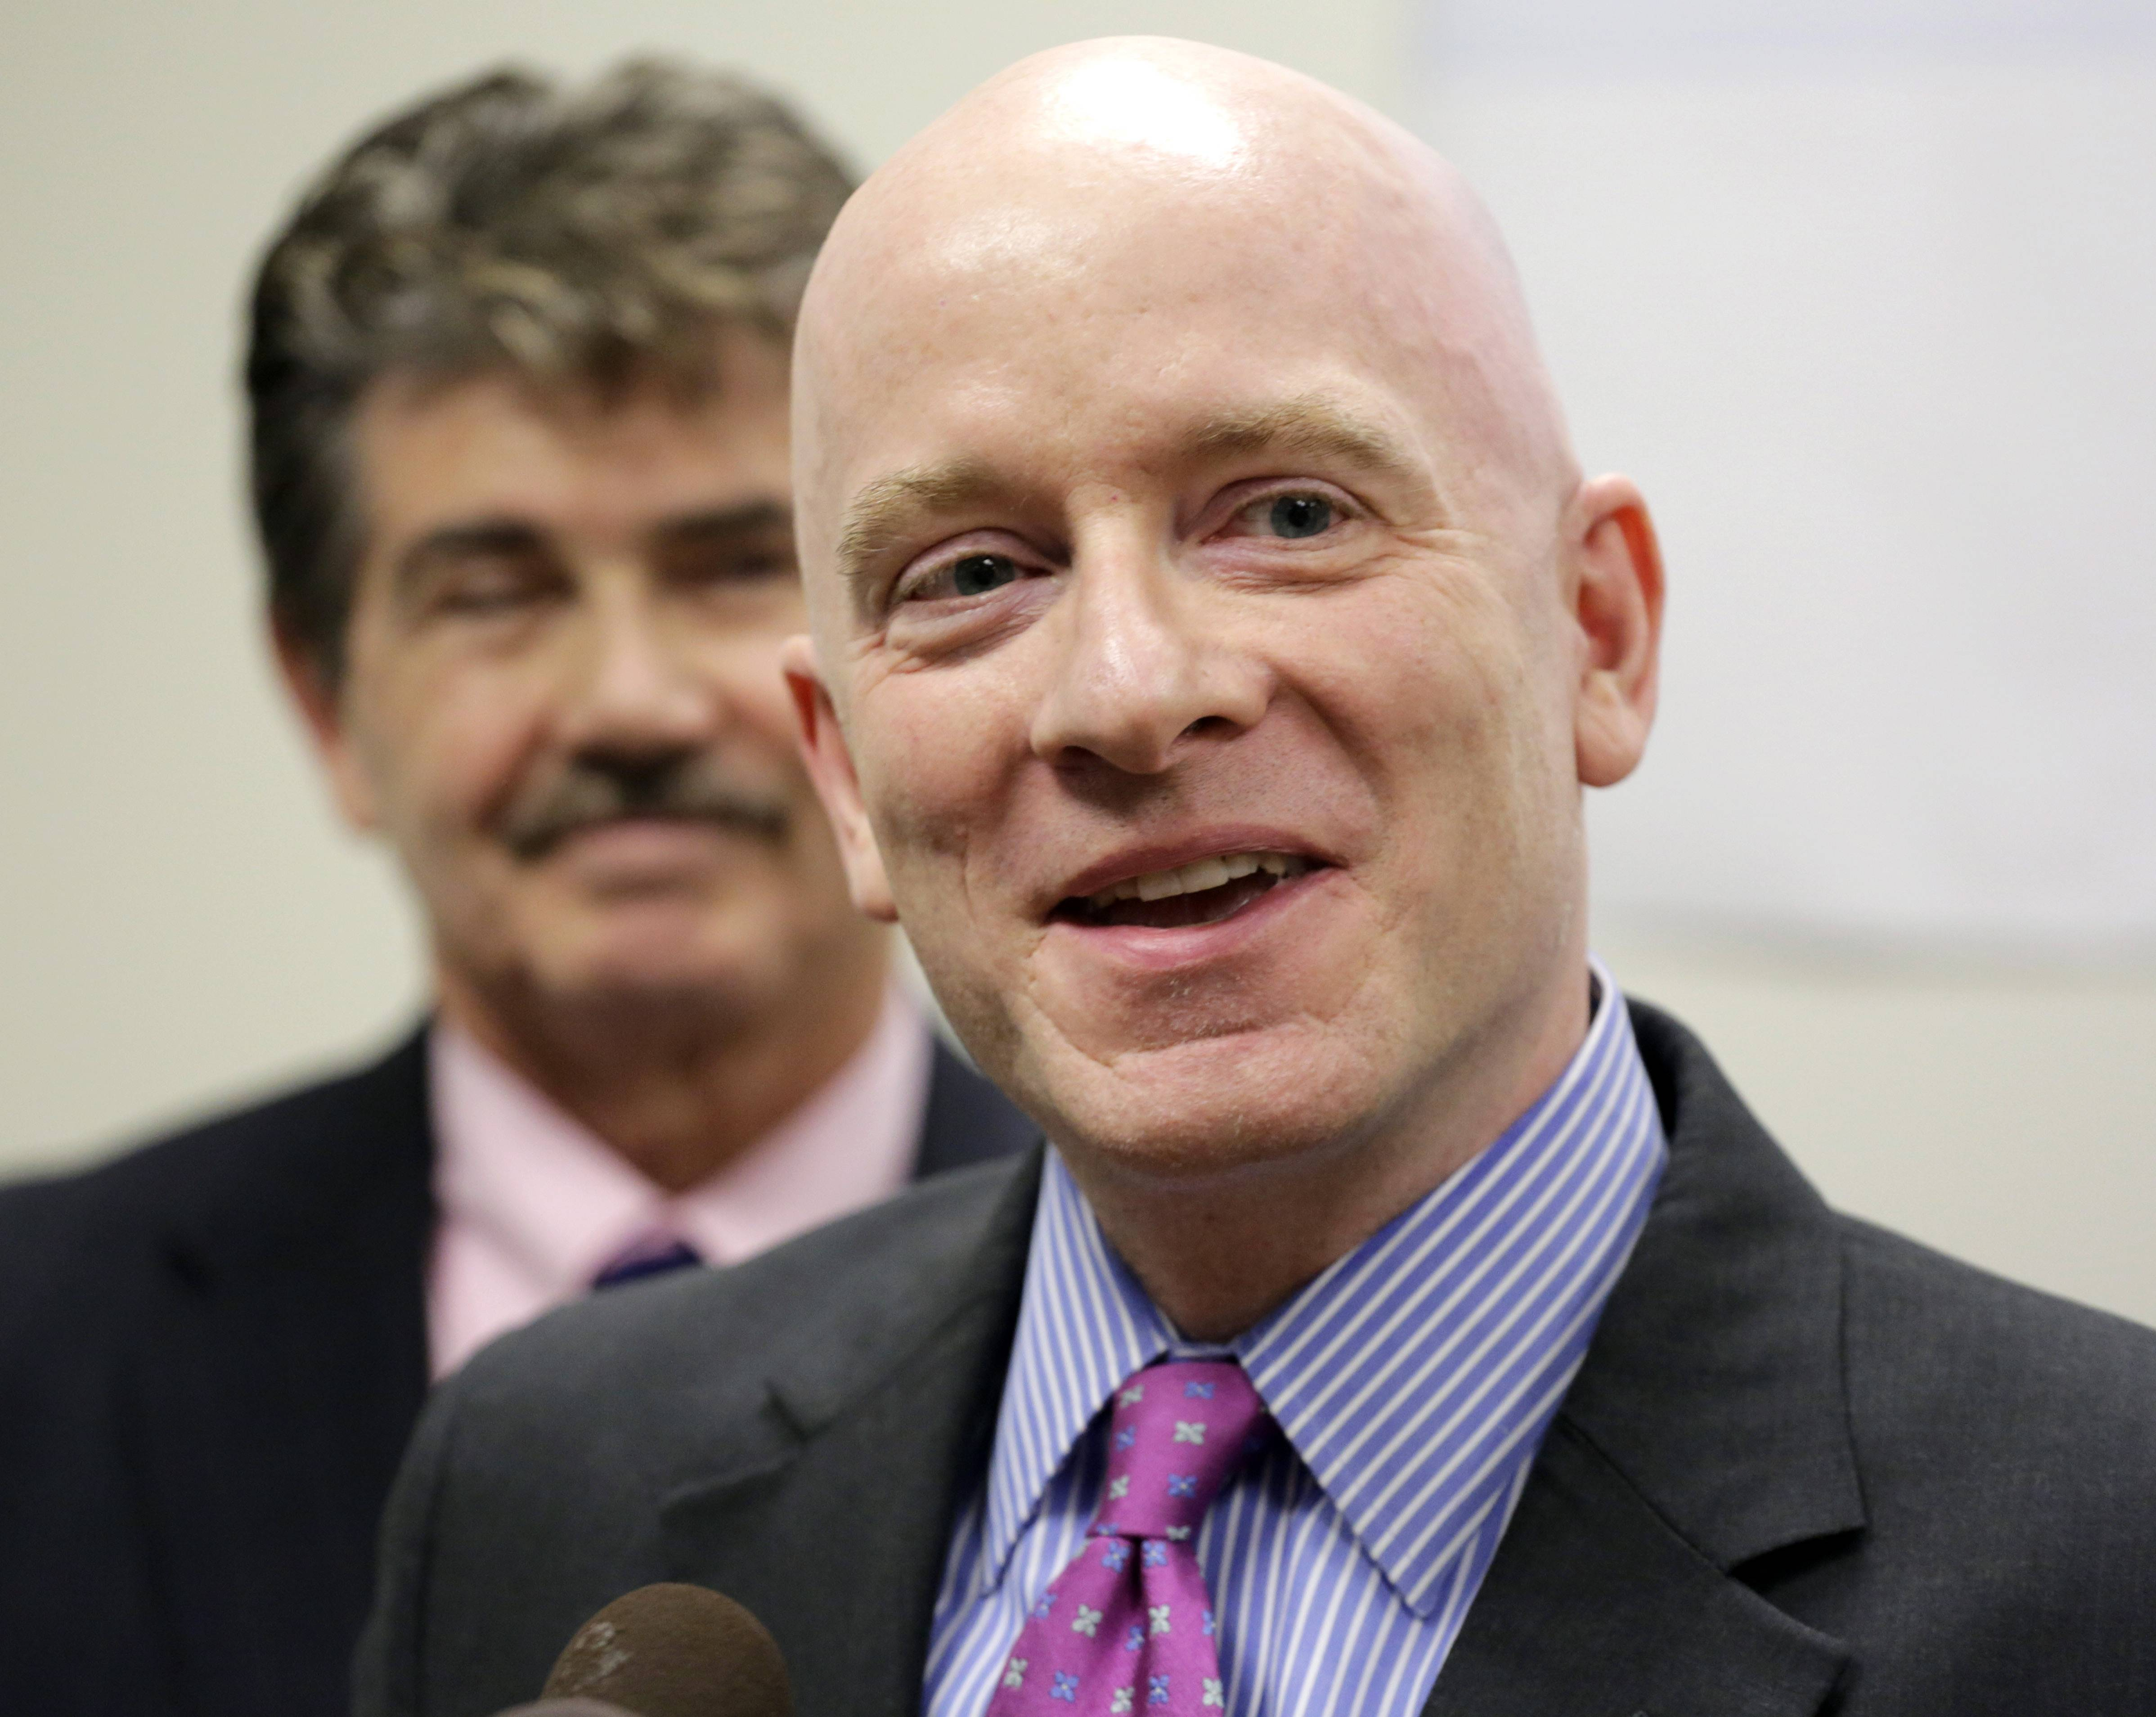 Cook County Clerk David Orr, left, and Christopher Clark, counsel at Lambda Legal speak at a news conference just after a federal judge ruled gay couples in the Chicago area don't have to wait until June to marry.